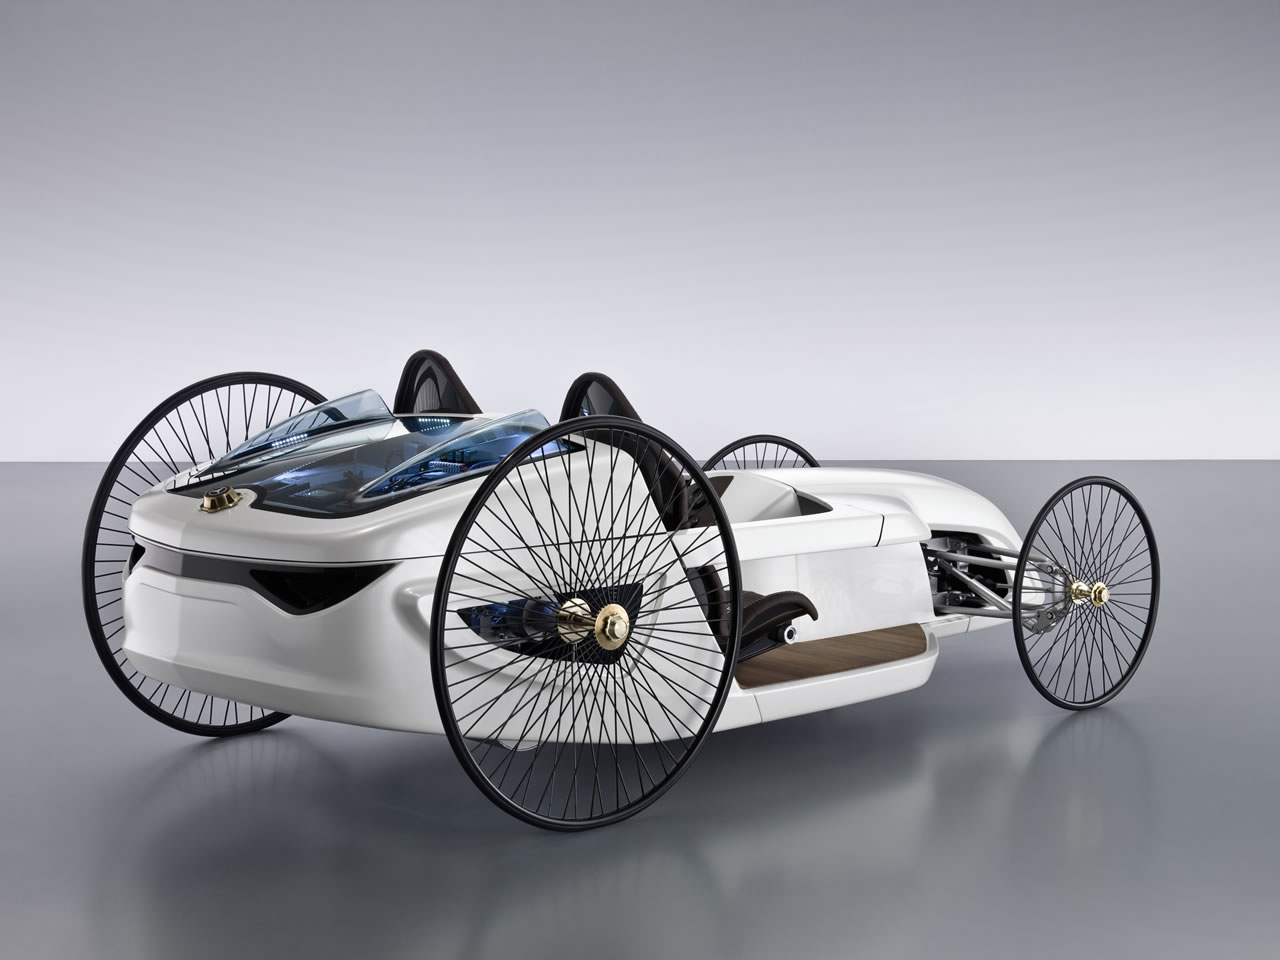 Mercedes-Benz F-Cell Roadster concept car - Humster3D ...